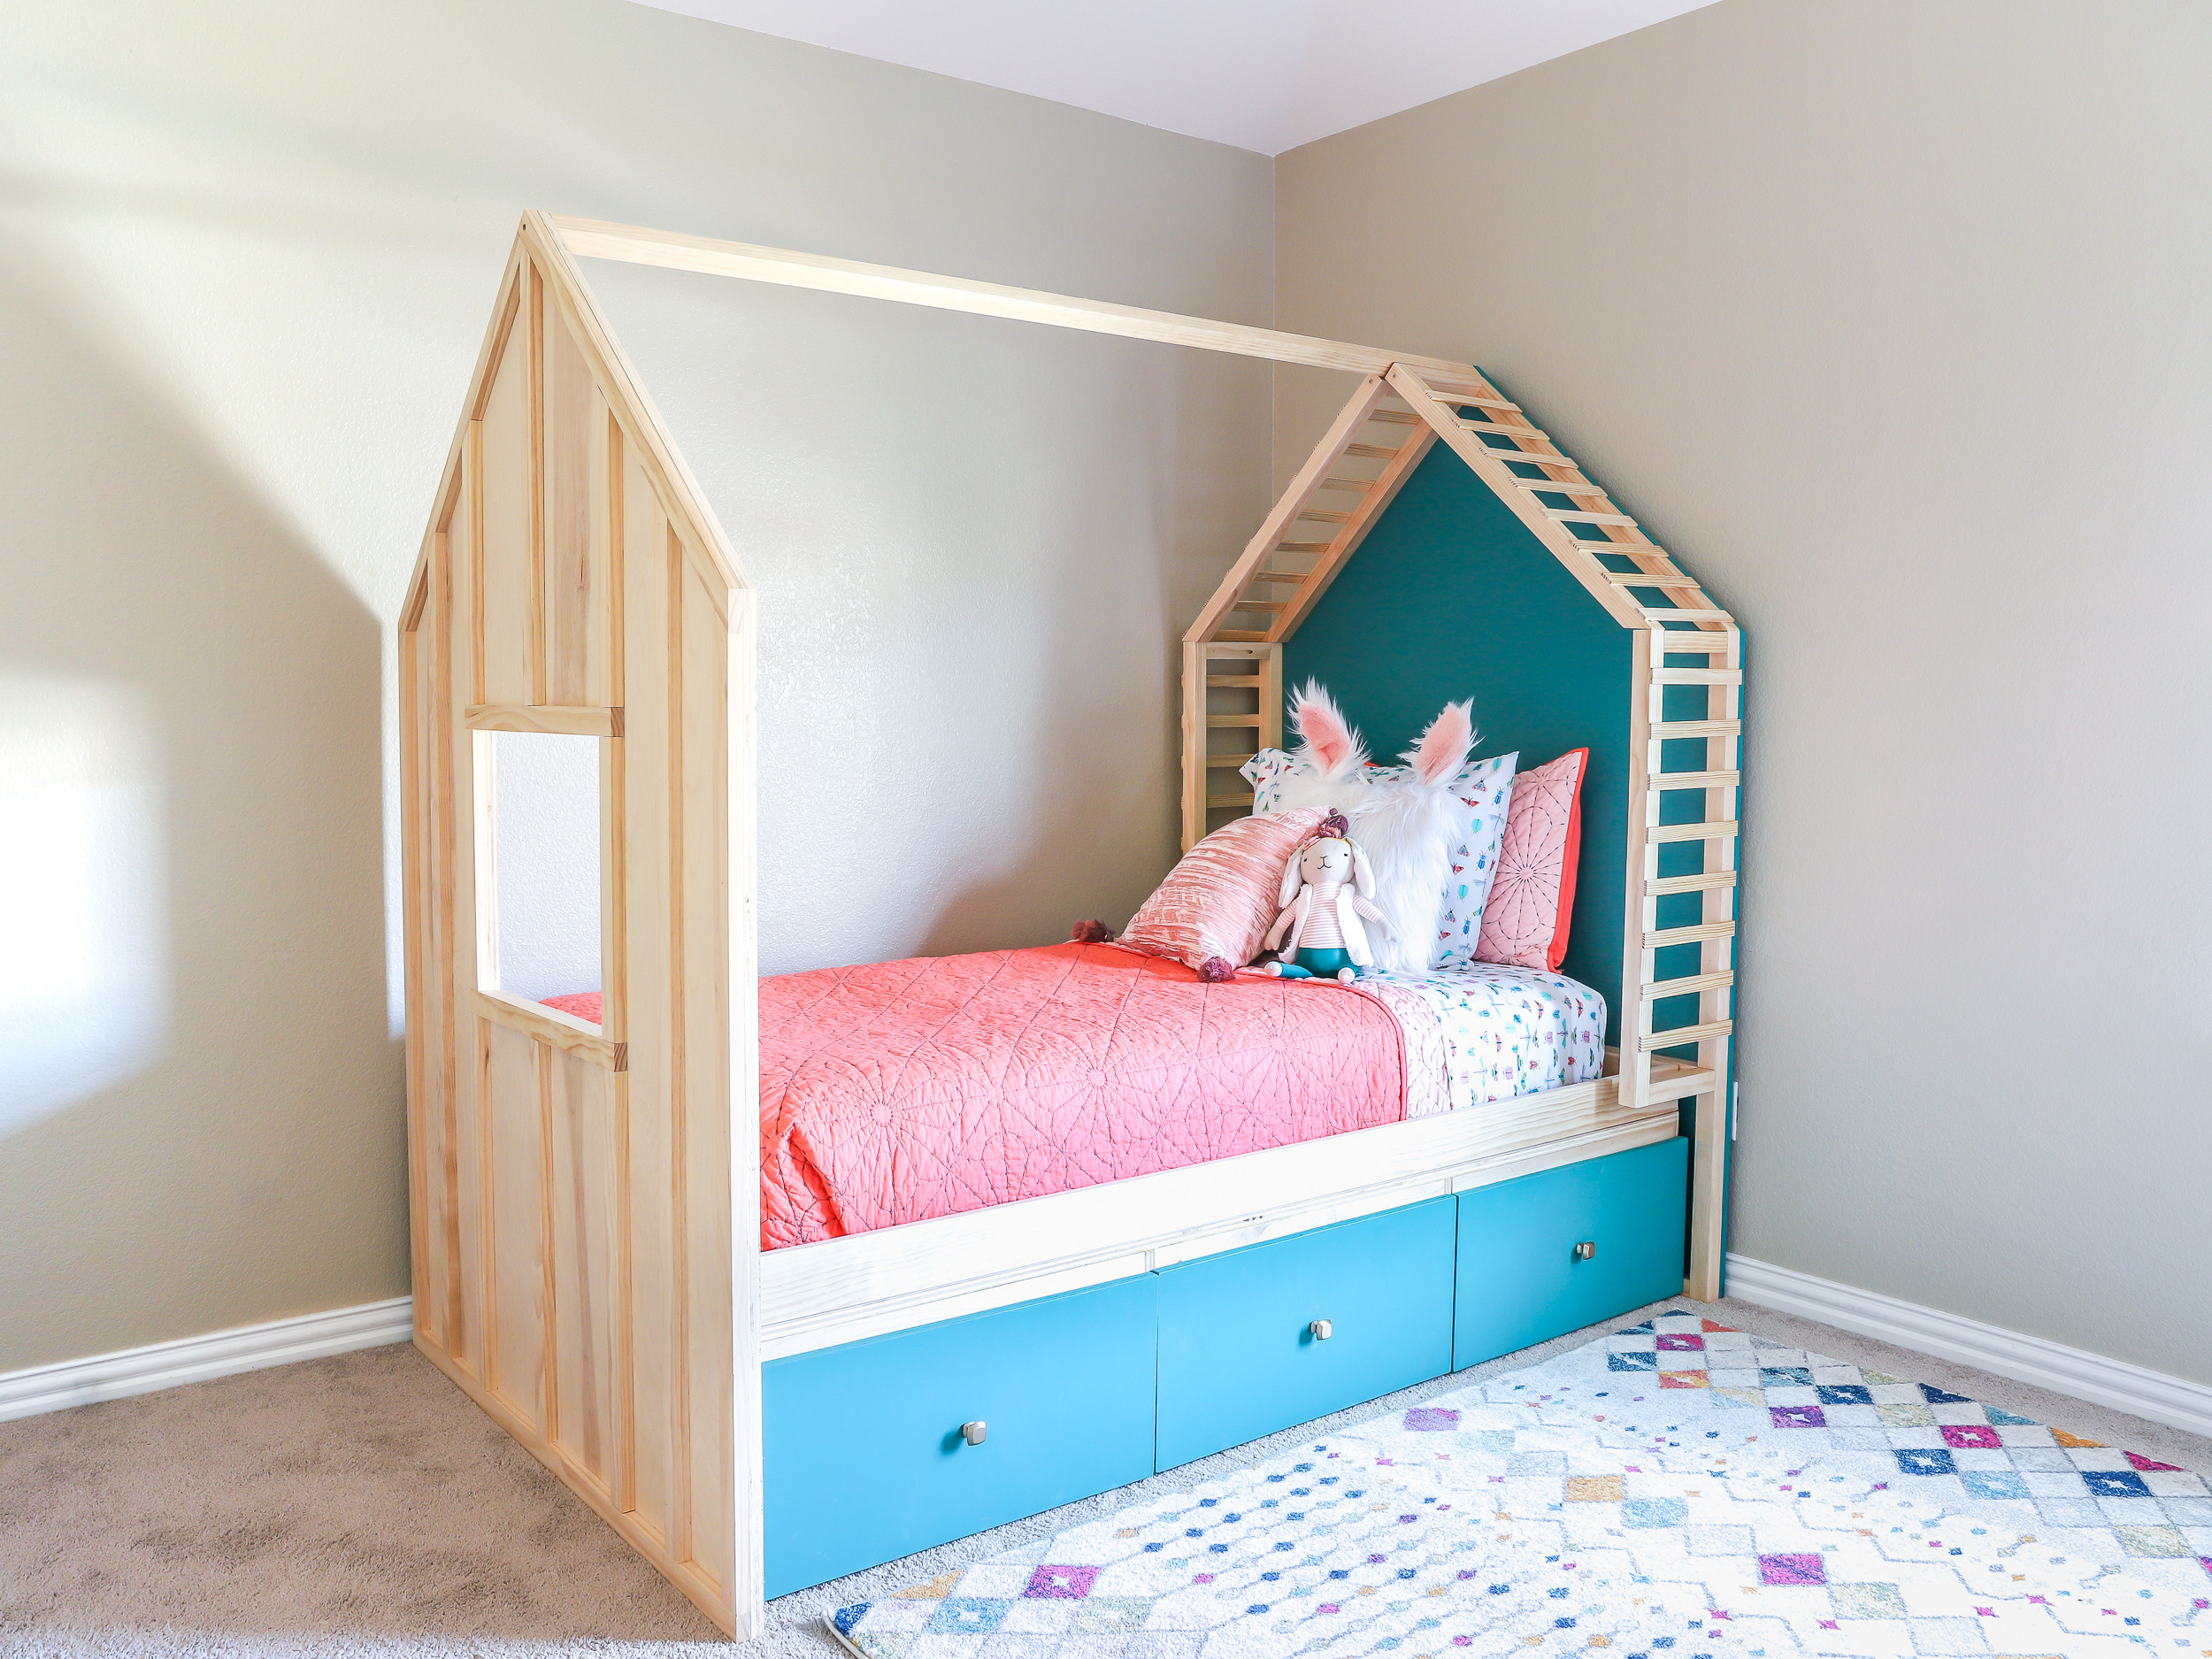 DIY Toddler House Bed  How to build a DIY kids house bed with storage build